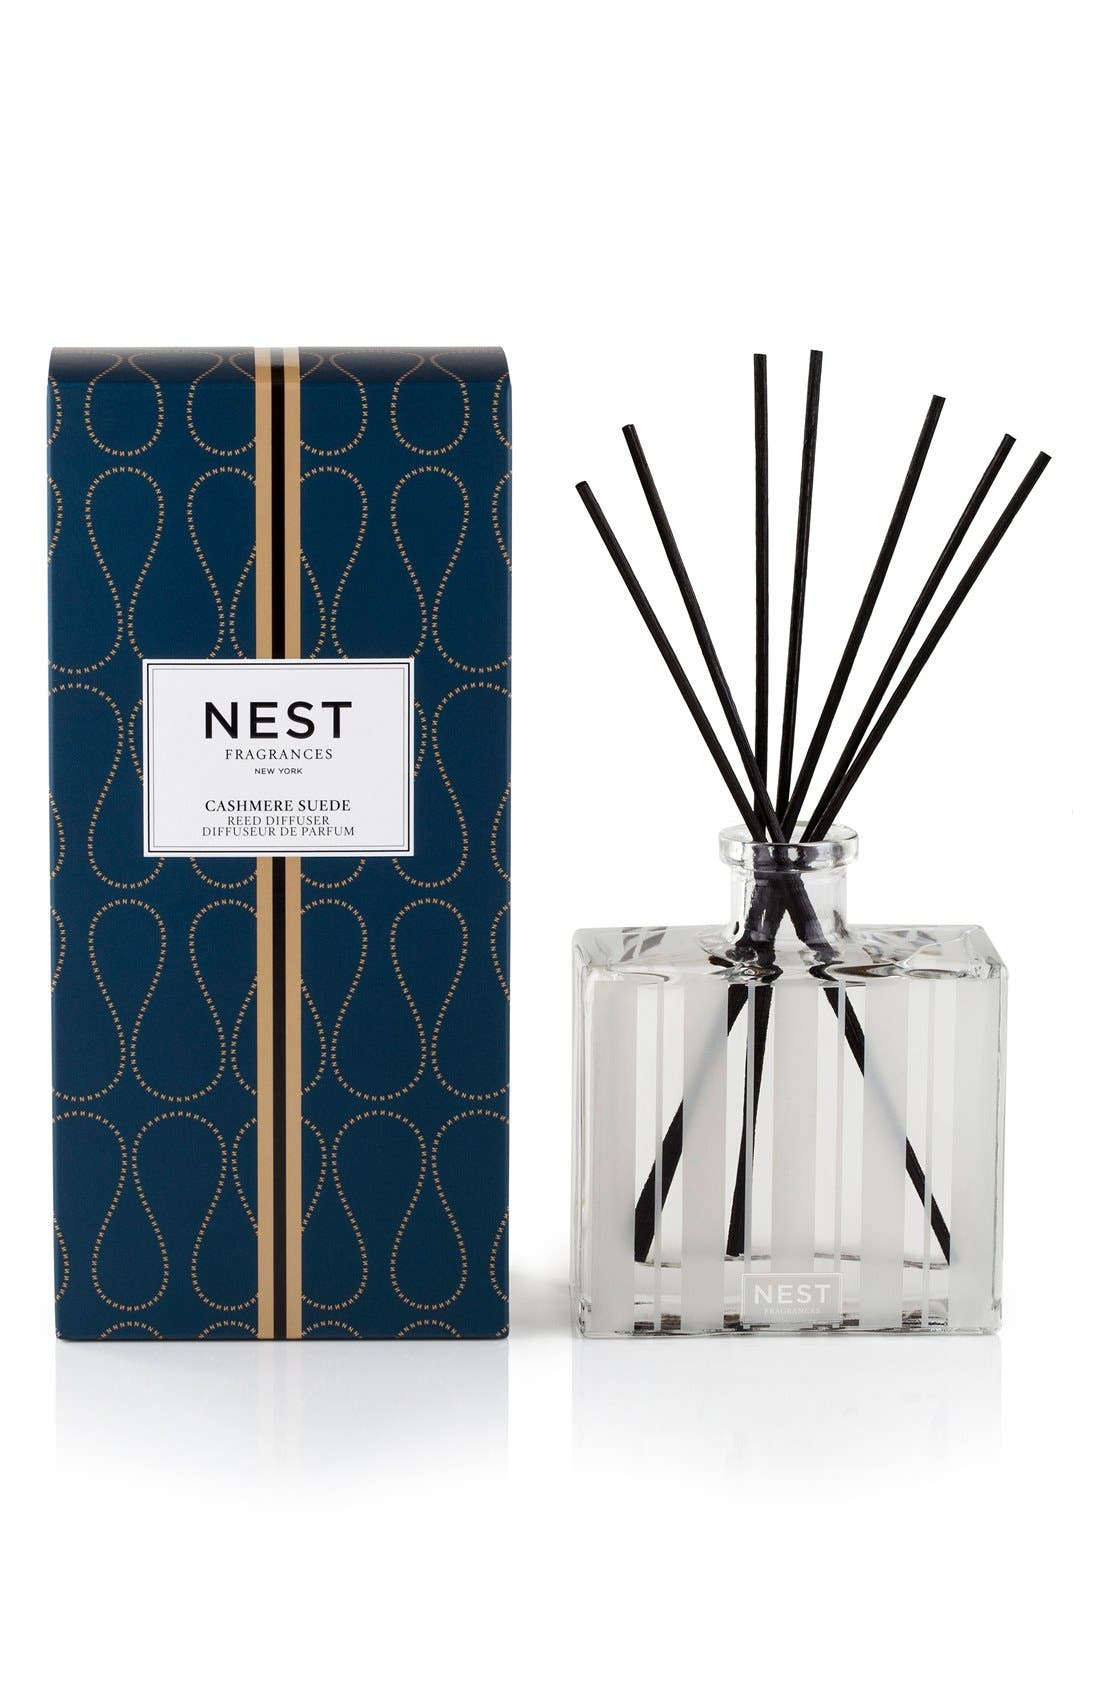 NEST Fragrances 'Cashmere Suede' Reed Diffuser